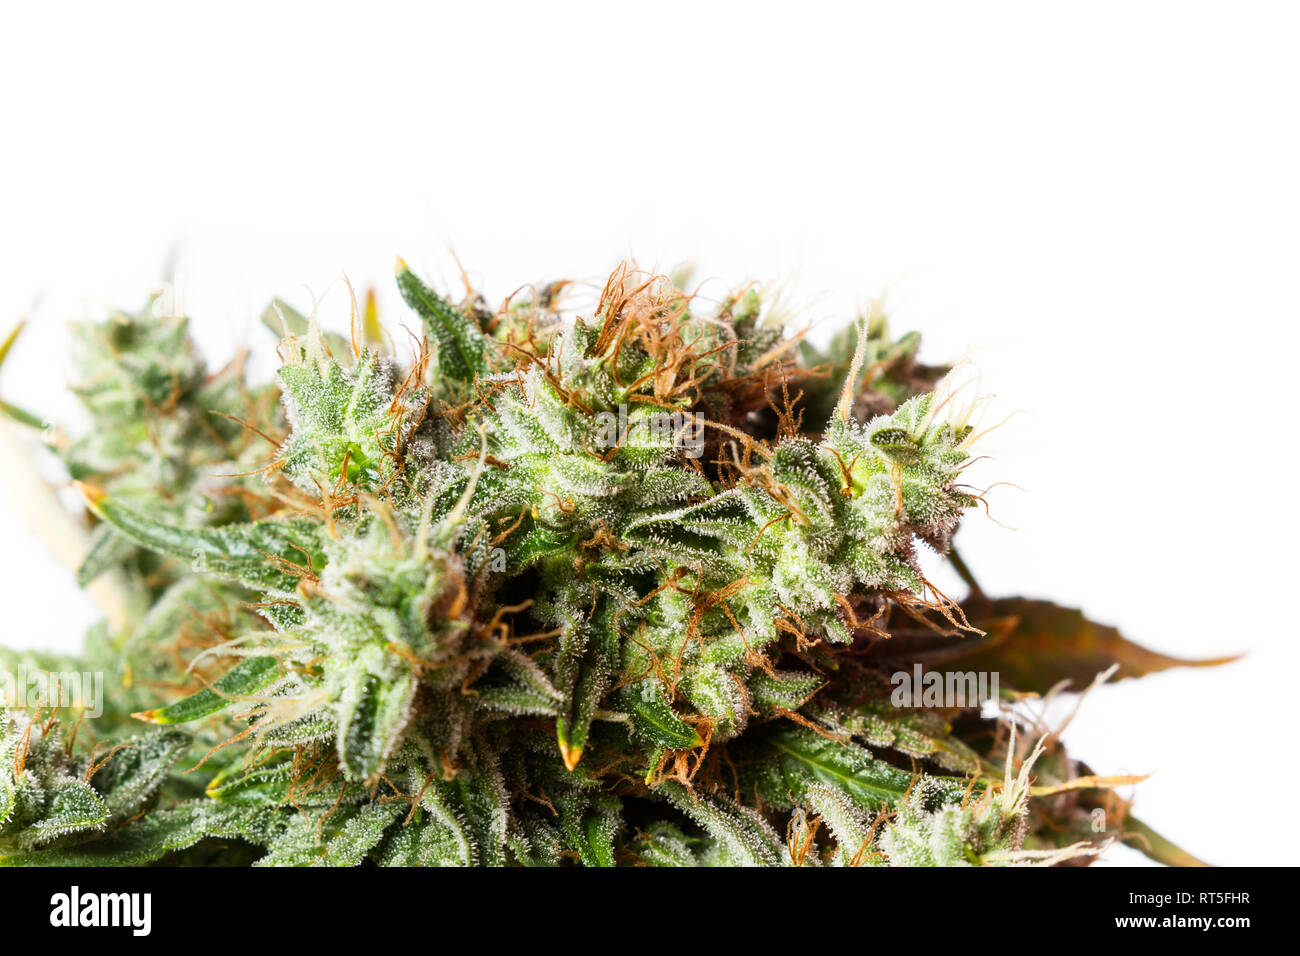 Popular cannabis strain known as Gorilla Glue number four isolated